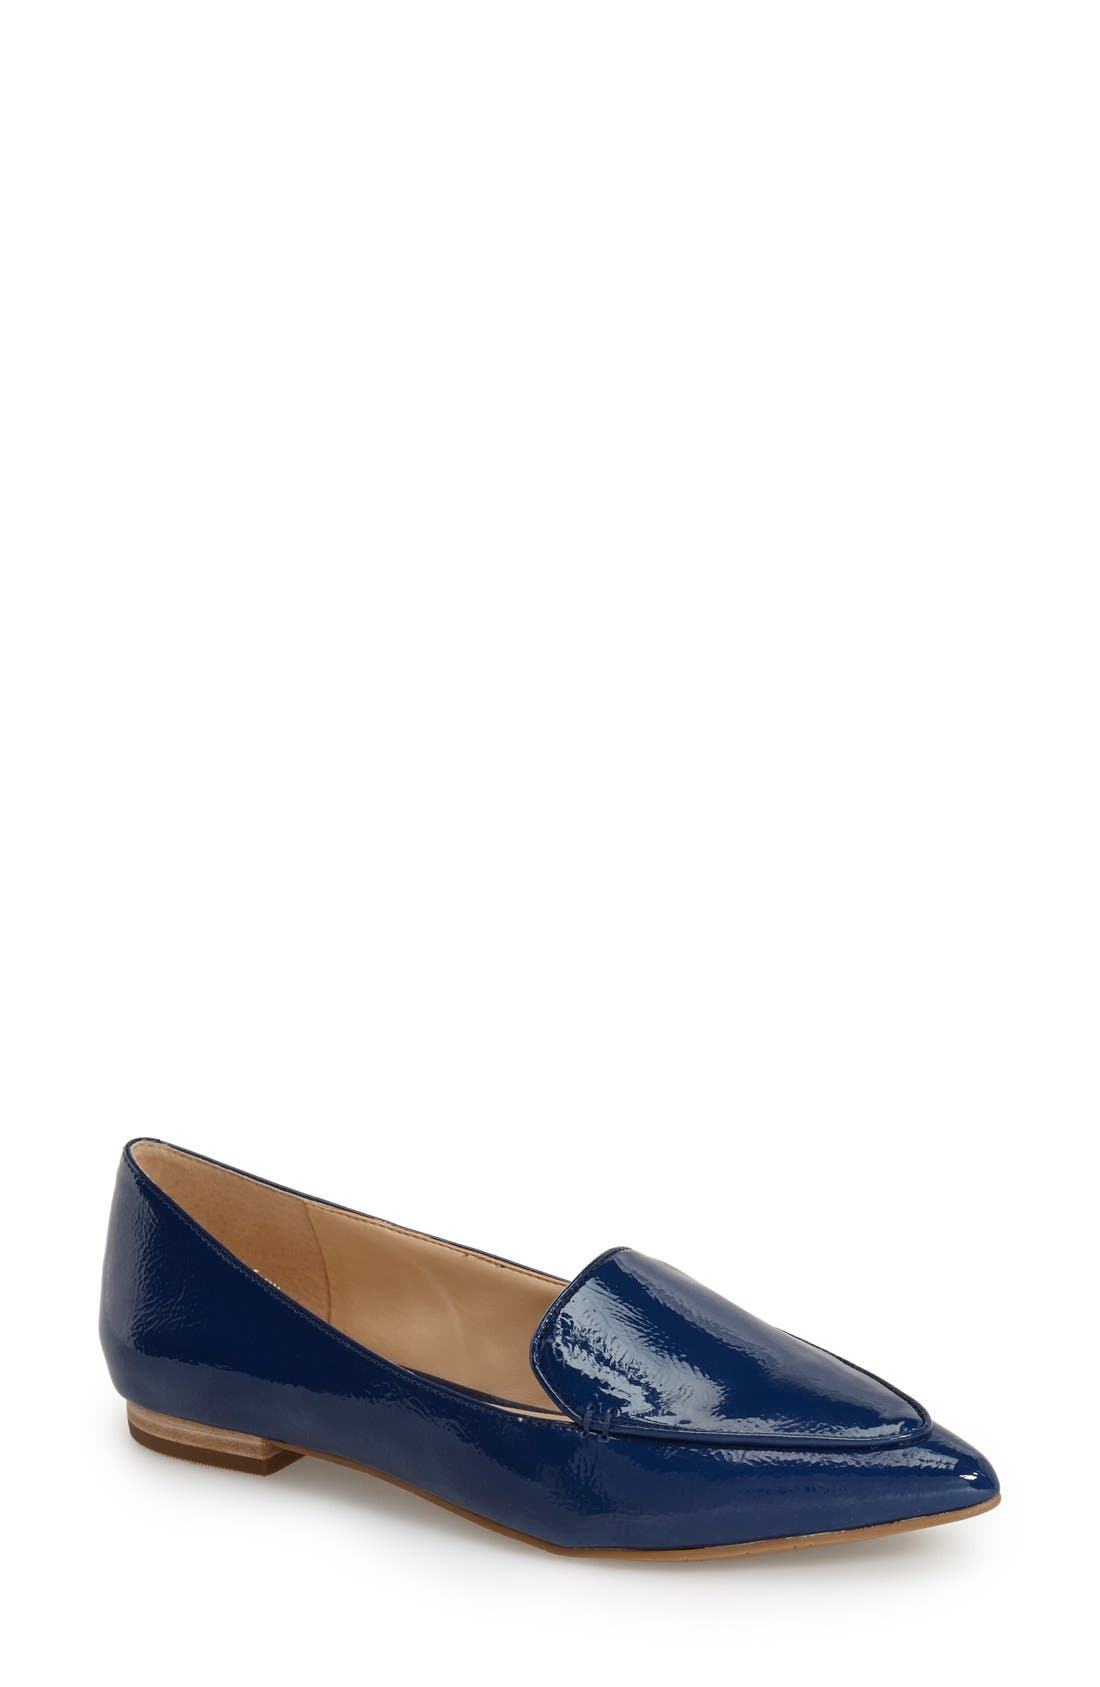 'Cammila' Pointy Toe Loafer,                             Main thumbnail 9, color,